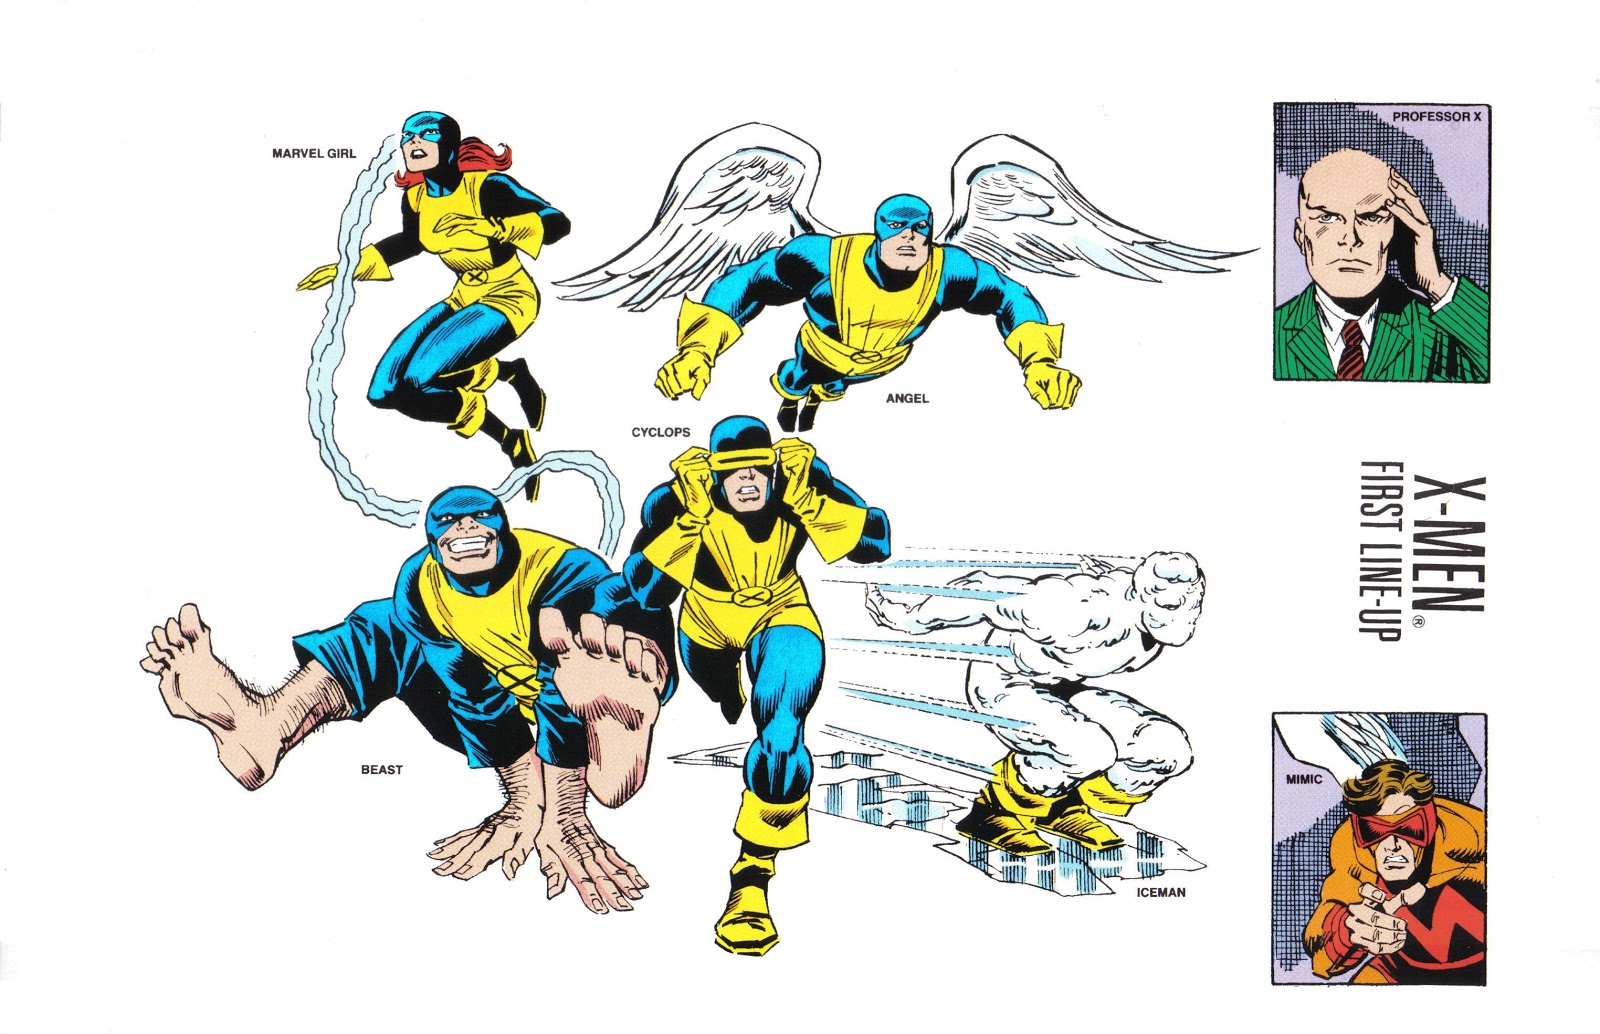 the unpublished x men update team line ups ron s credit was omitted from the first line up printed in issue 23 but was printed as a correction in the next issue we will bring you more team line ups